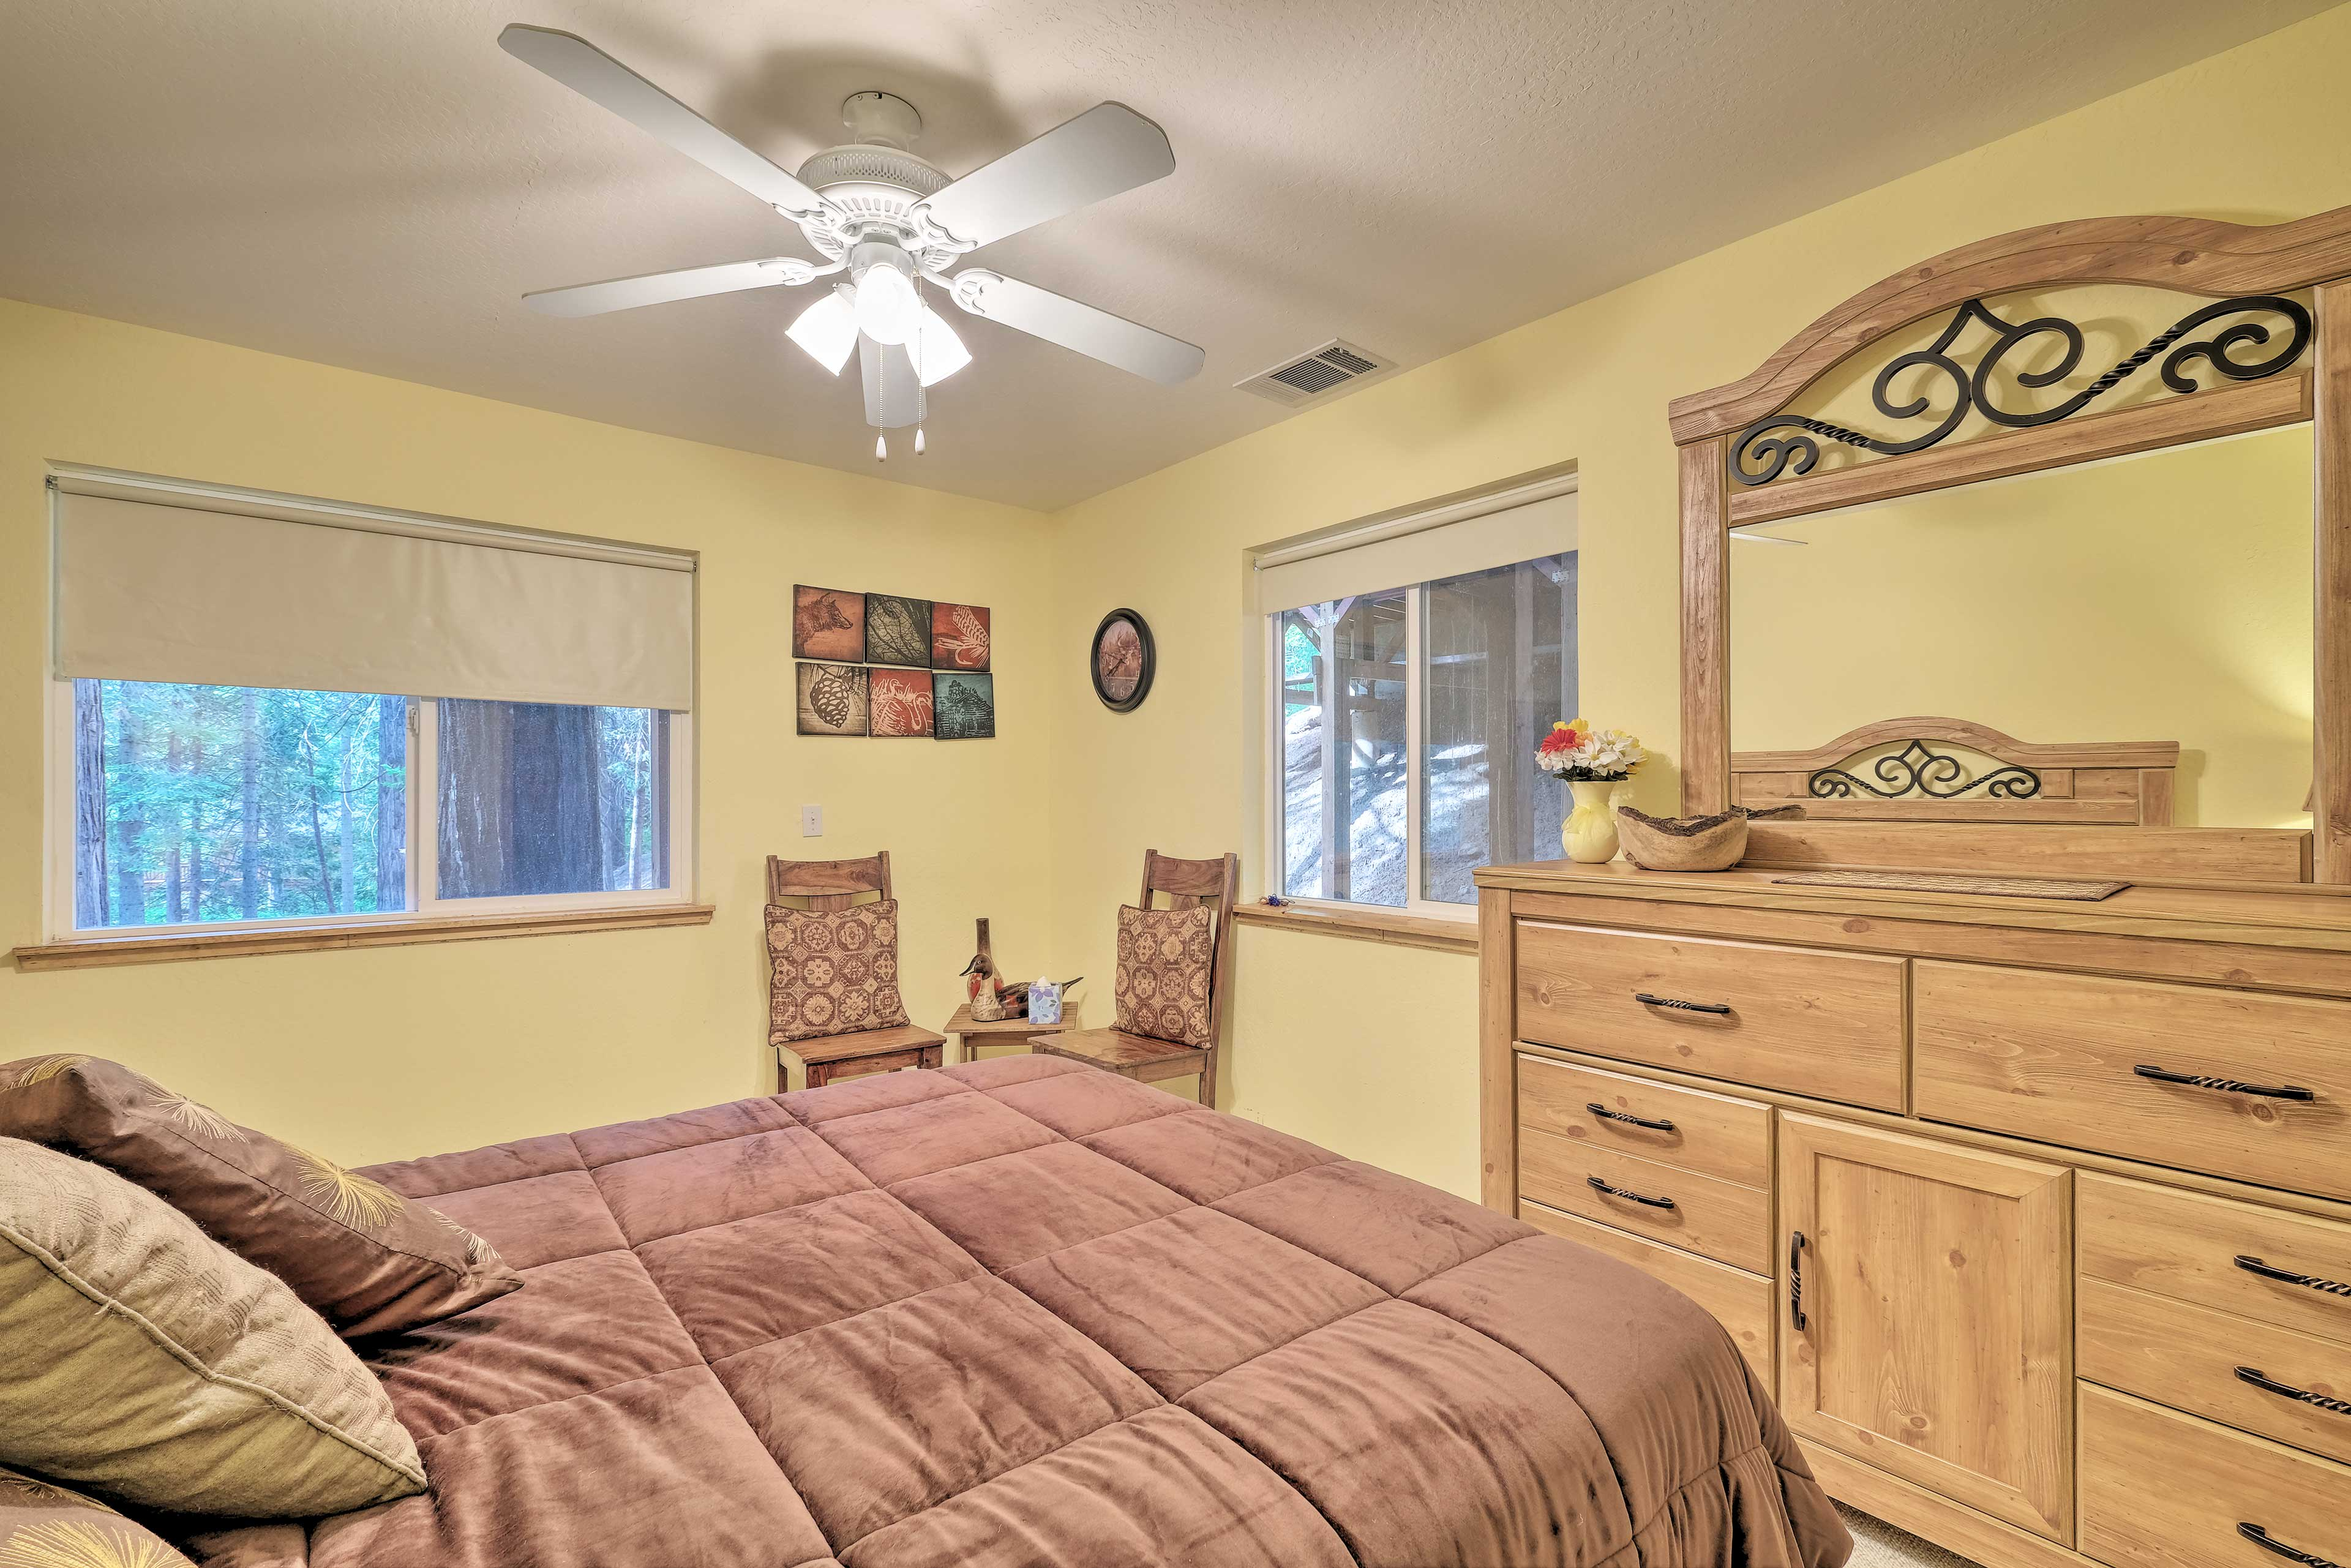 The master bedroom boasts a queen-sized bed for 2.